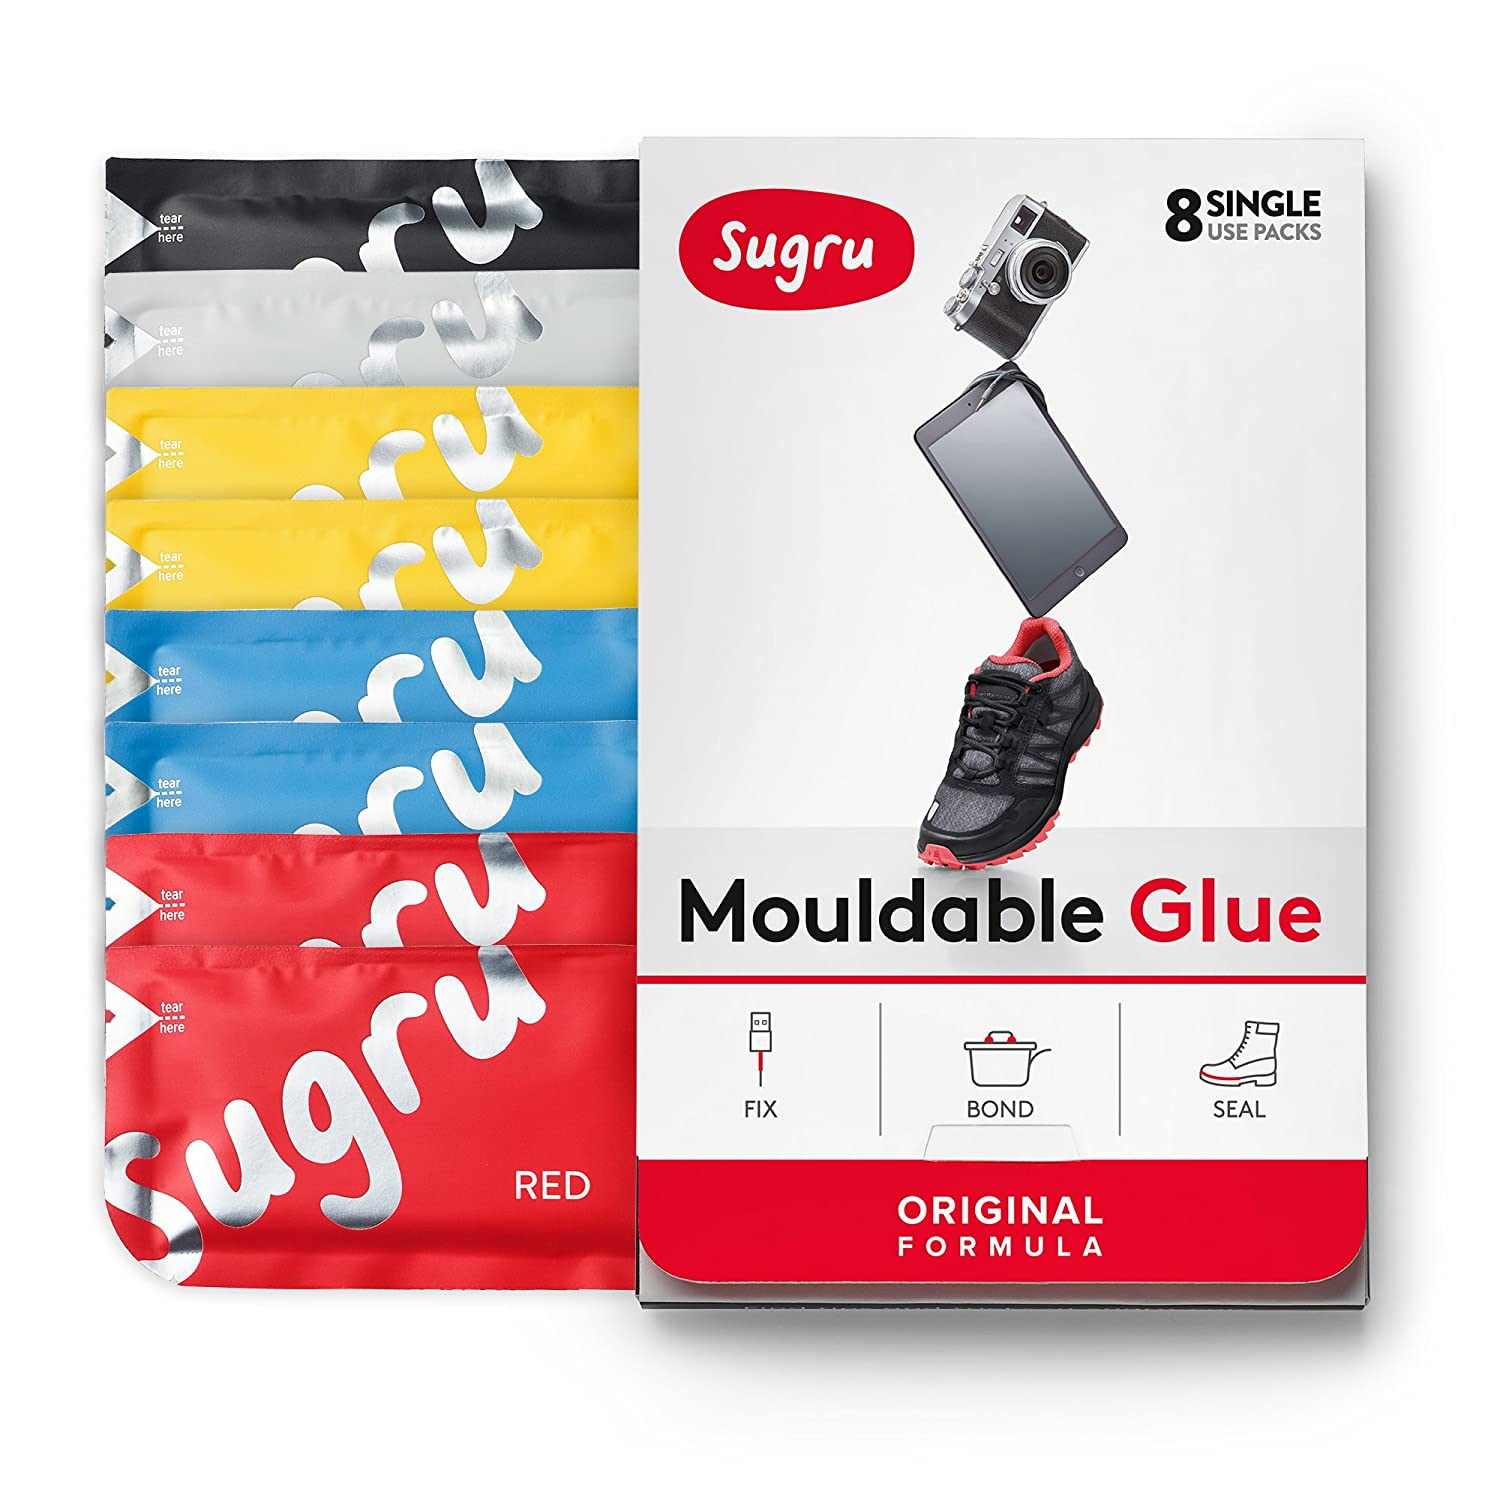 A Glue That Will Fix Everything - Sugru Moldable Glue